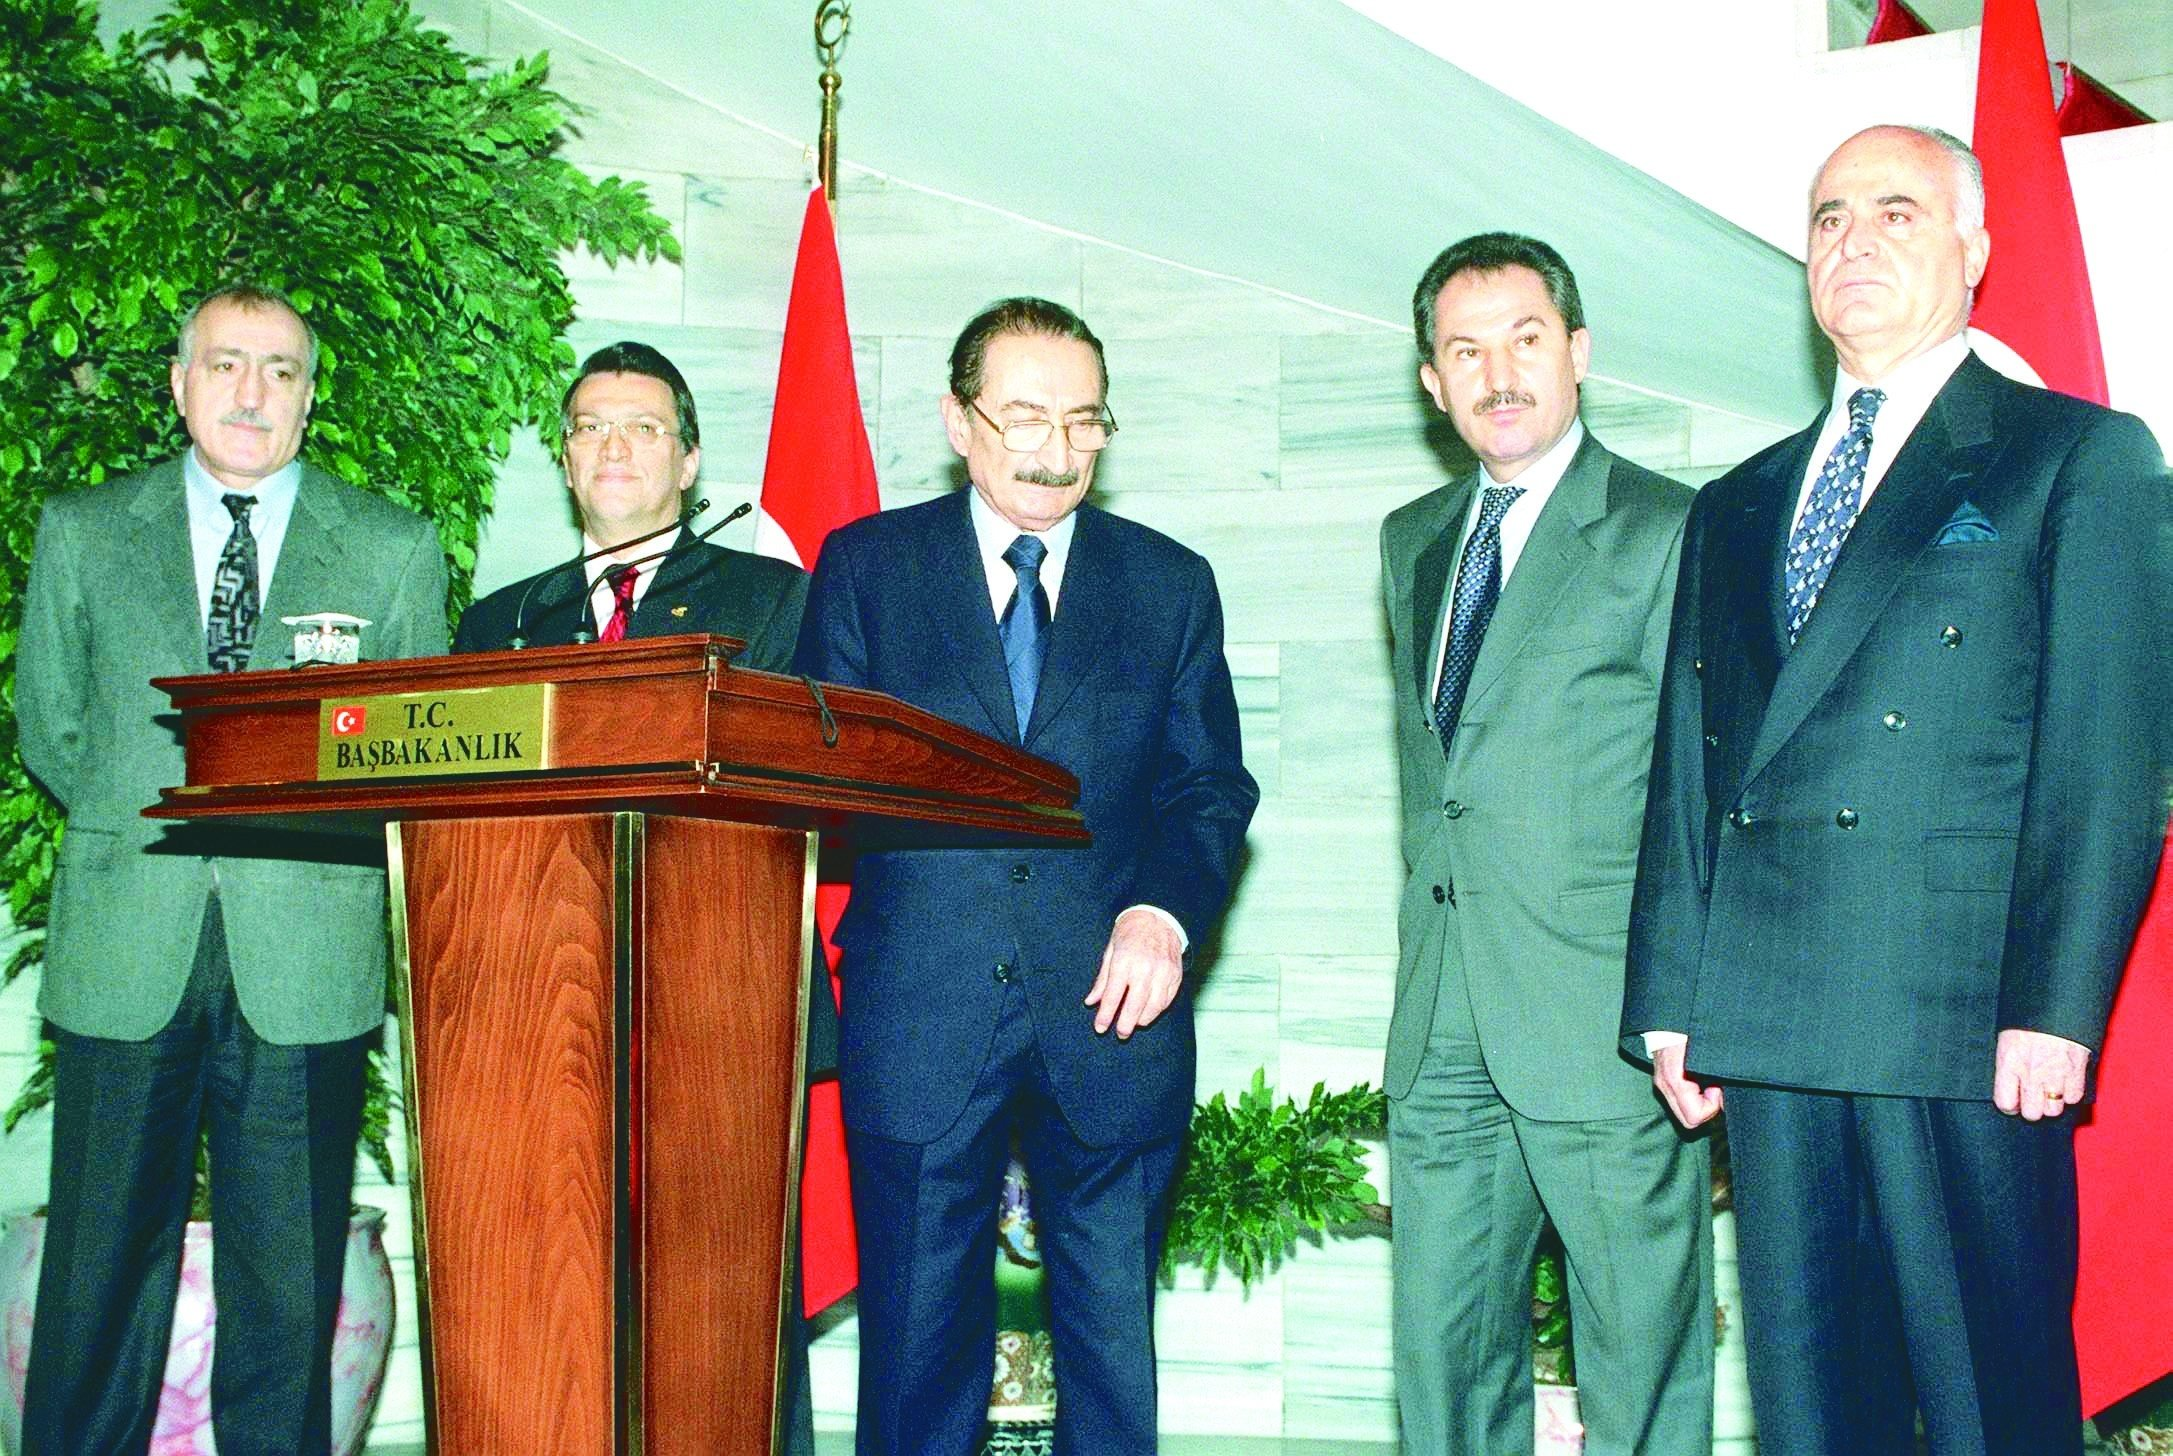 This file photo dated Feb. 20, 2001 shows Prime Minister Bülent Ecevit (C), accompanied by Deputy Prime Minister Mesut Yılmaz (2nd L), Deputy Prime Minister Hüsamettin Özkan of DSP (2nd R), Interior Minister Saadettin Tantan of ANAP (L), and Defense Minister Sabahattin Çakmakoğlu (R), leaving a press conference at the Prime Ministry in Ankara after a contentious National Security Council (MGK) meeting. (AA Photo) Following a heated discussion between Ecevit, Özkan and President Sezer at the MGK meeting in violation of long established state protocols over the Presidency's involvement in corruption probes, which included Sezer and Özkan throwing a booklet of constitution back and forth, led to an abrupt end of the meeting. In the following press conference, Ecevit described the row as an 'unprecedented state crisis' and publicly accused Sezer of misusing his powers and disrespect towards himself and the members of his cabinet. His words led a long-brewing financial collapse the next day known as the 2001 Turkish financial crisis. Yılmaz, visibly nervous in the photo, remarked later years that he did not expect Ecevit, who was vocally angry after the meeting, to make such a statement at the time and would use a rather conciliatory tone.